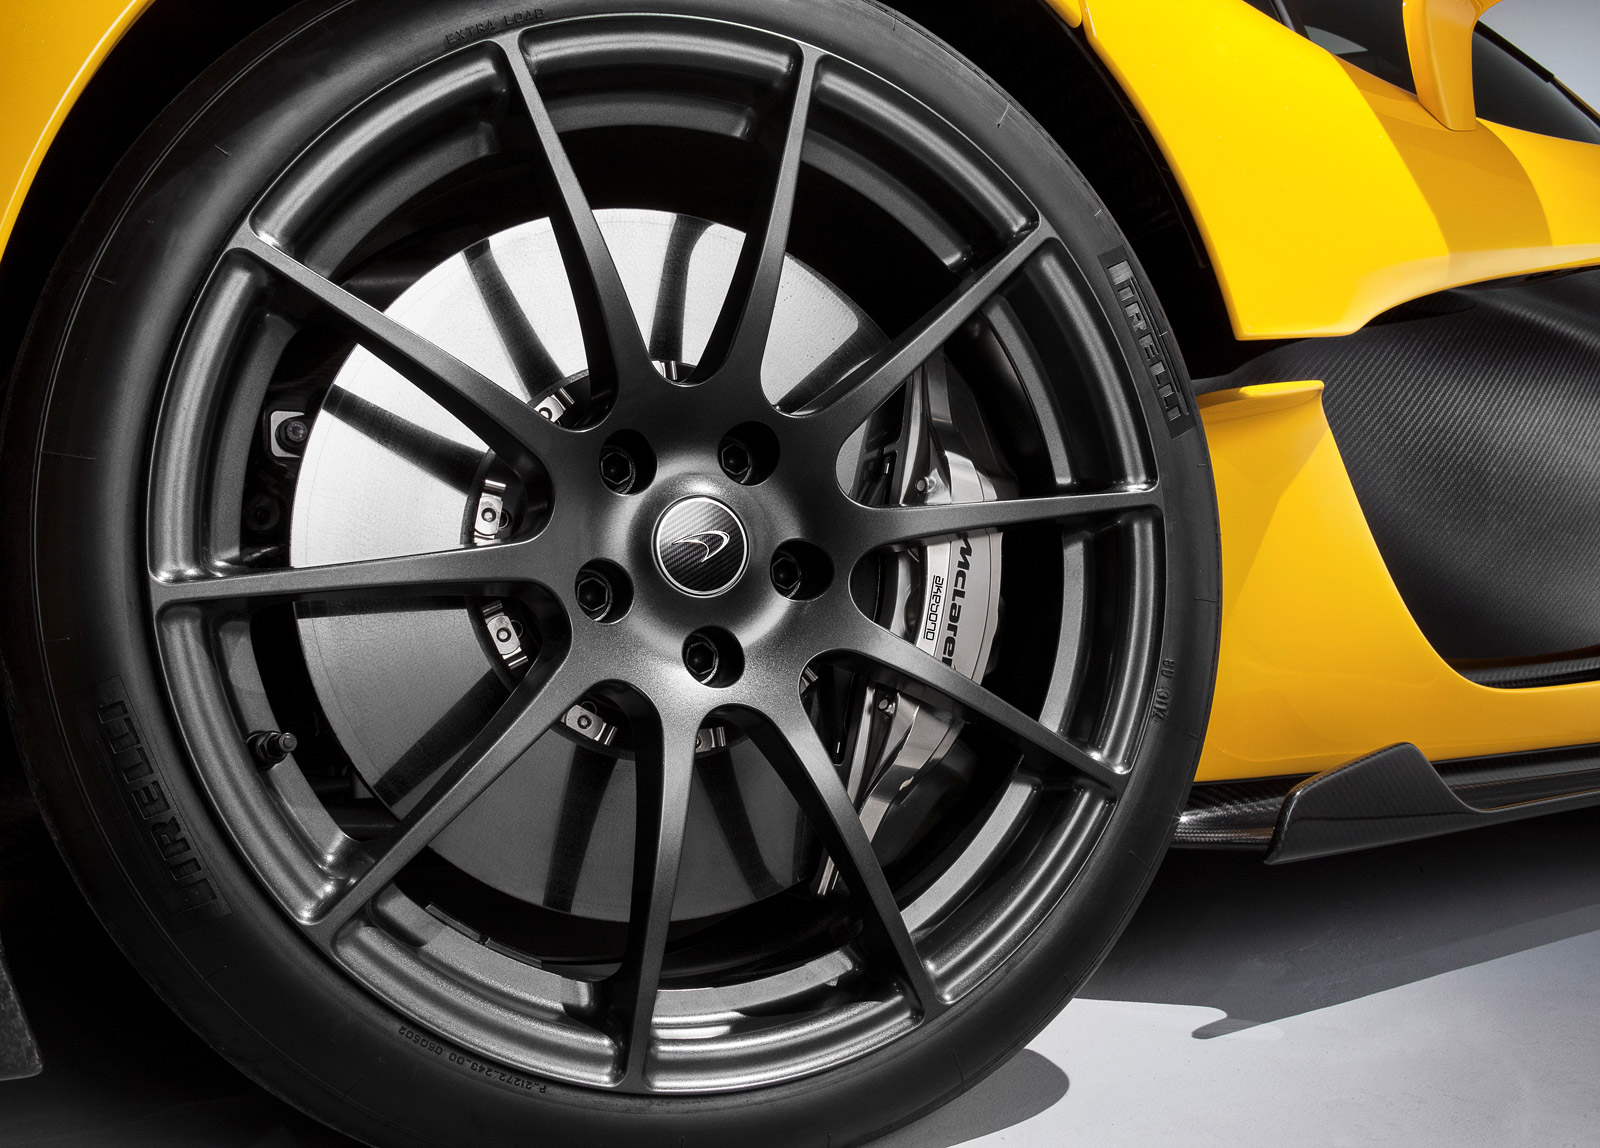 Mclaren P Supercar H as well Gta additionally Jeep Grand Cherokee Trackhawk Coupe Render also Jeep Wrangler Dragon Cargo Area together with Jeep Cherokee Trailhawk Off Road. on trackhawk jeep grand cherokee